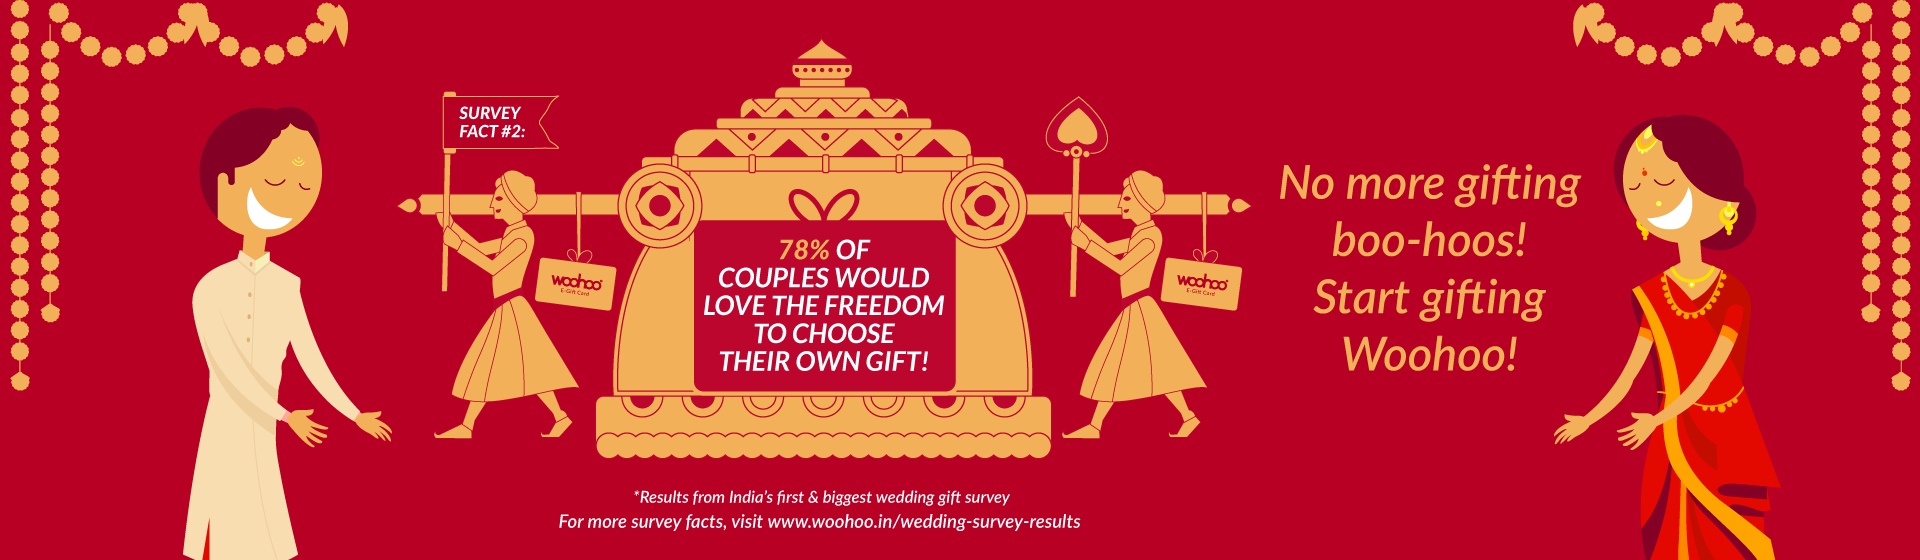 Wedding Gift Cards, Gift Vouchers and E-Gift Cards